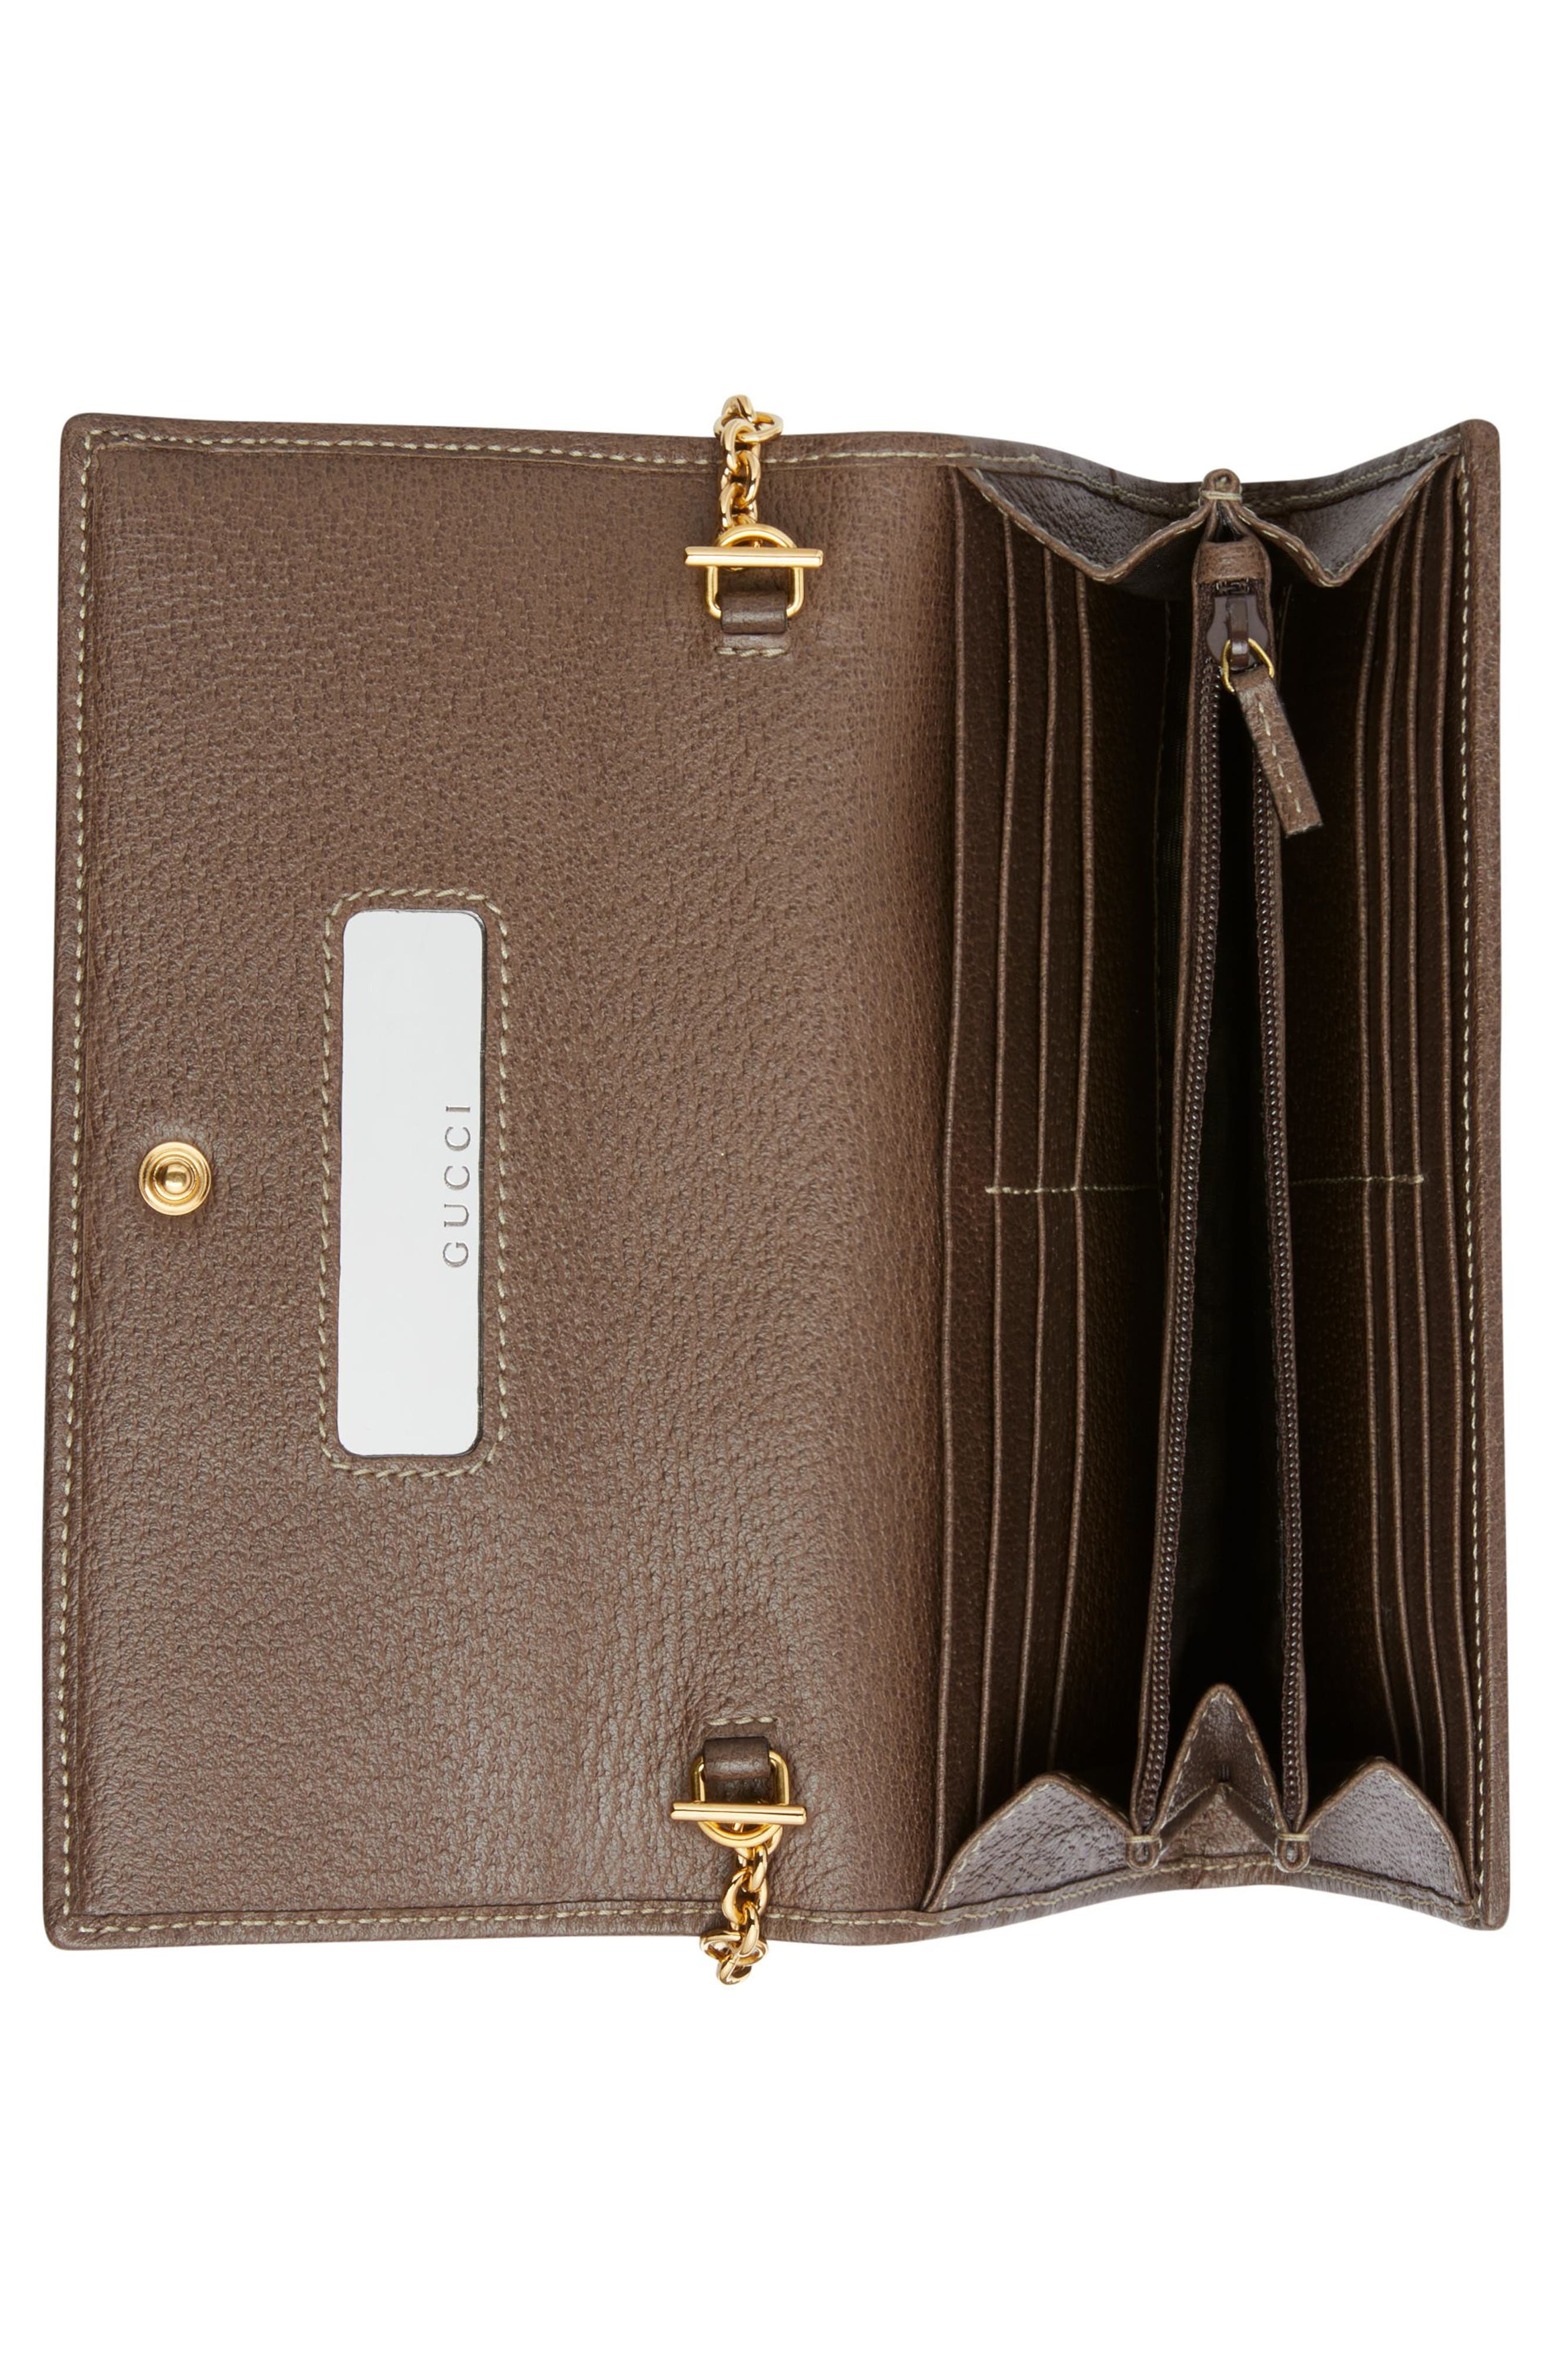 Ophidia GG Supreme Wallet on a Chain,                             Alternate thumbnail 3, color,                             BEIGE EBONY/ NEW ACERO